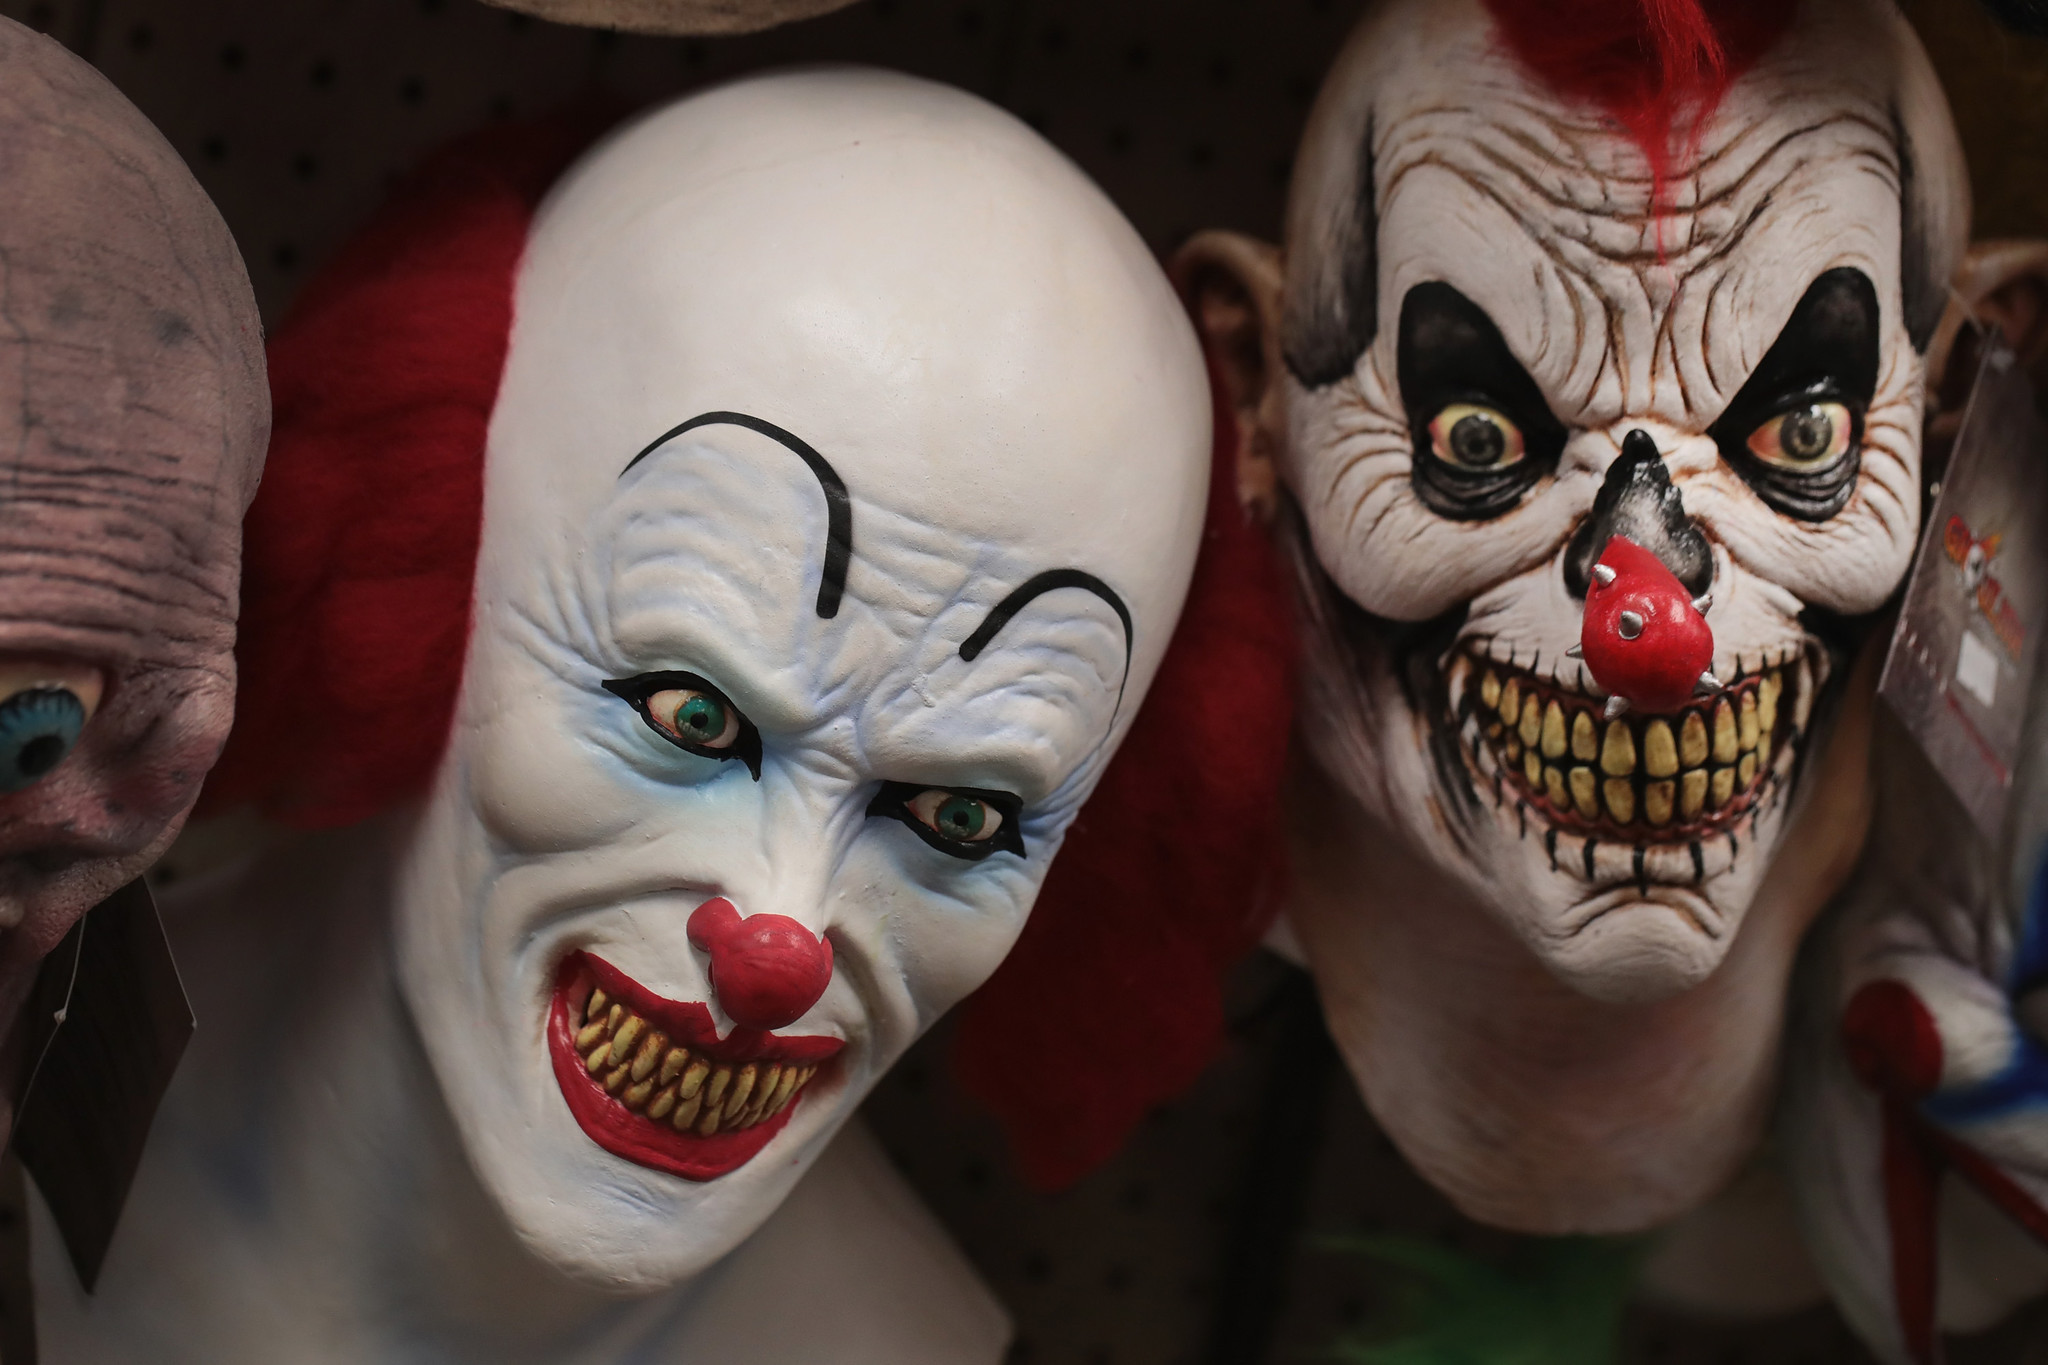 Clown costumes banned from some school Halloween ...